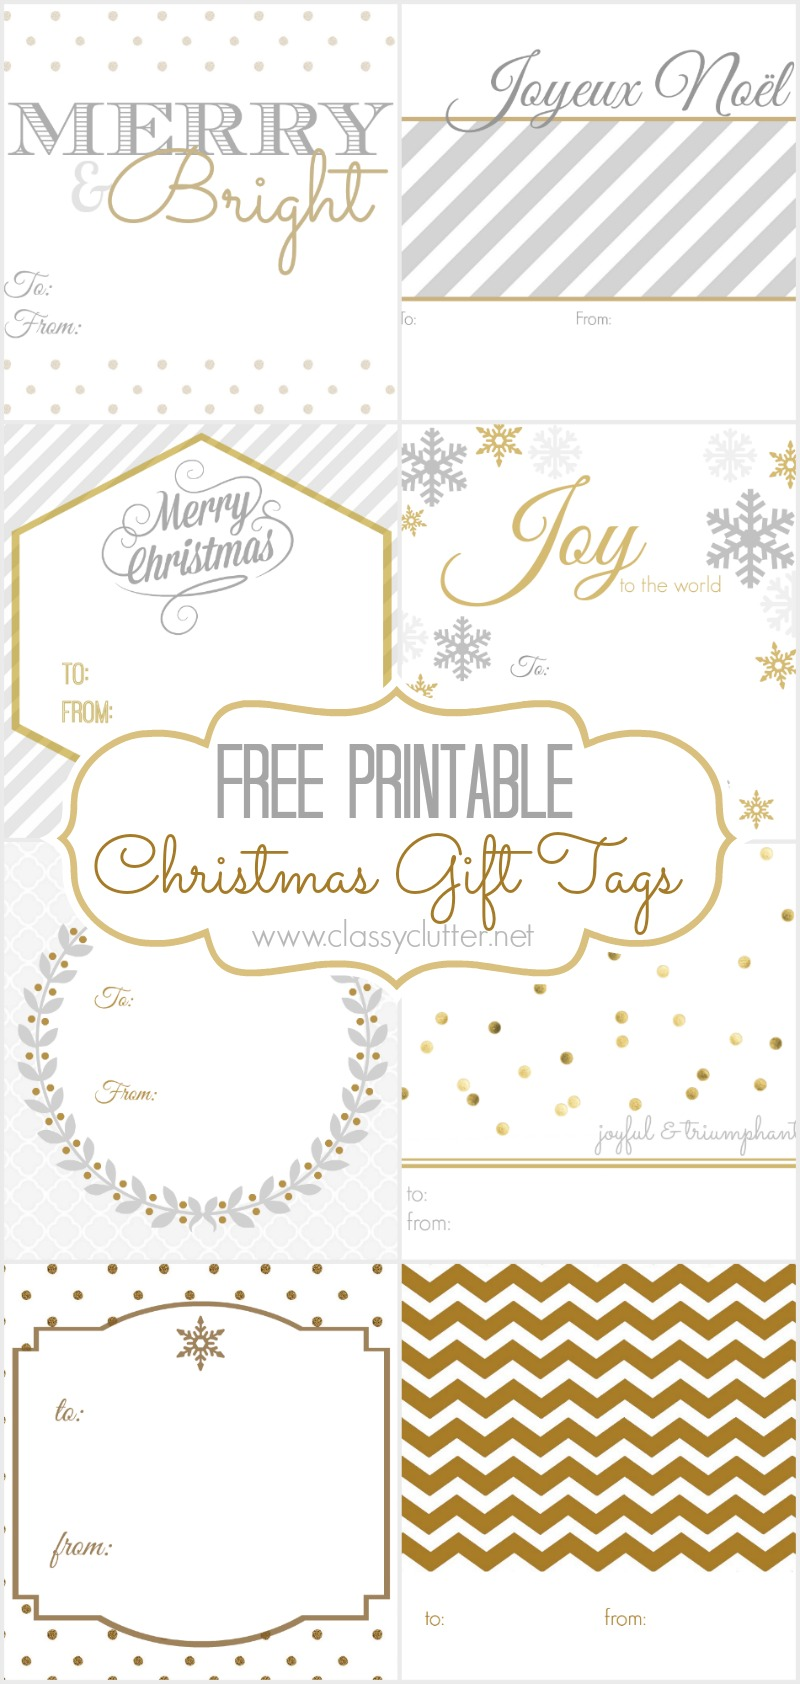 Stupendous image for free printable favor tags